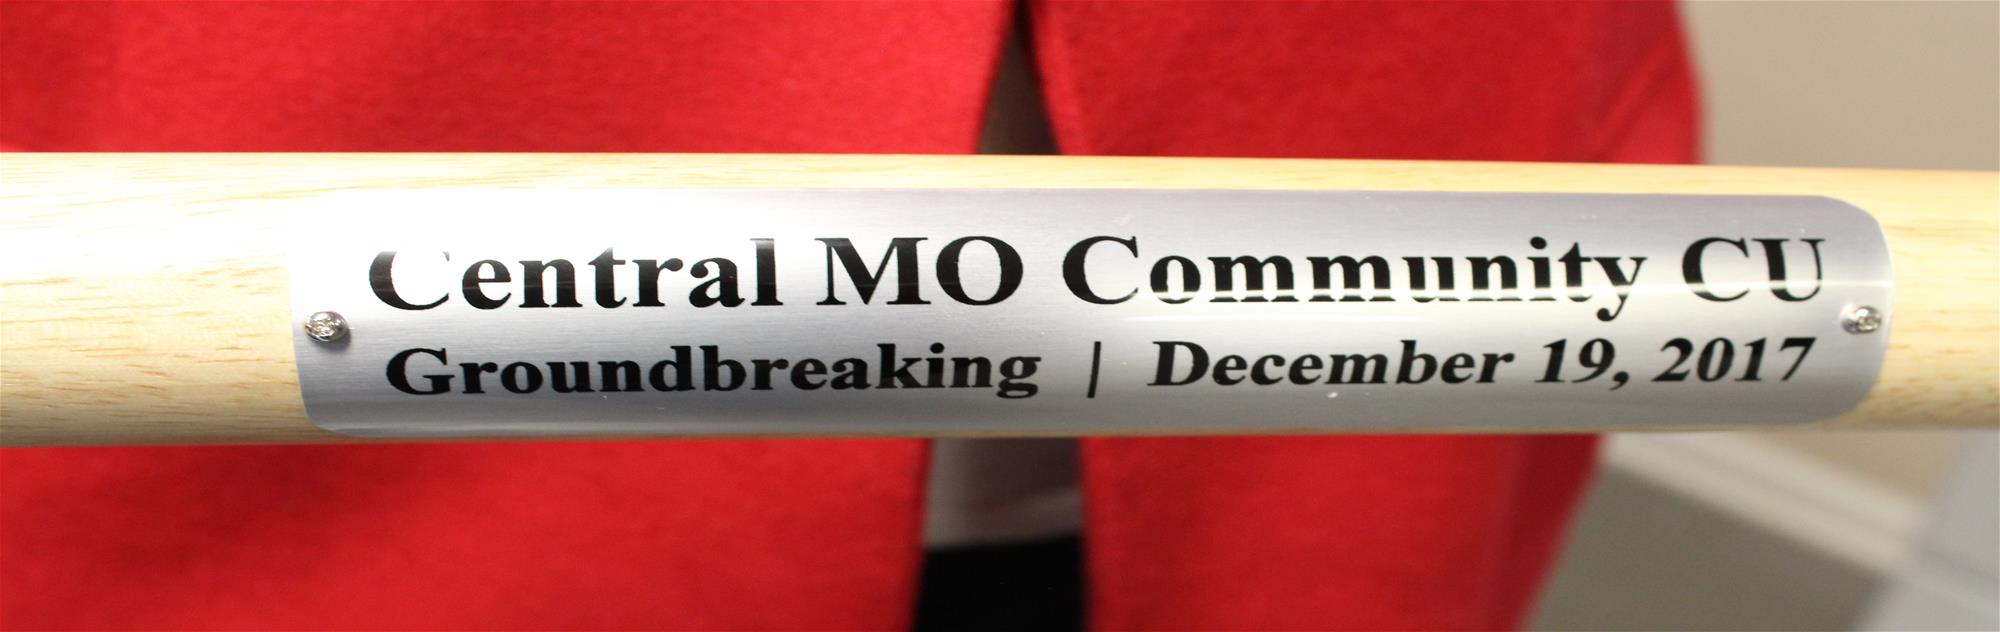 "Shovel Handle with wording stating ""Central MO Community CU Groundbreaking December 19, 2017"""